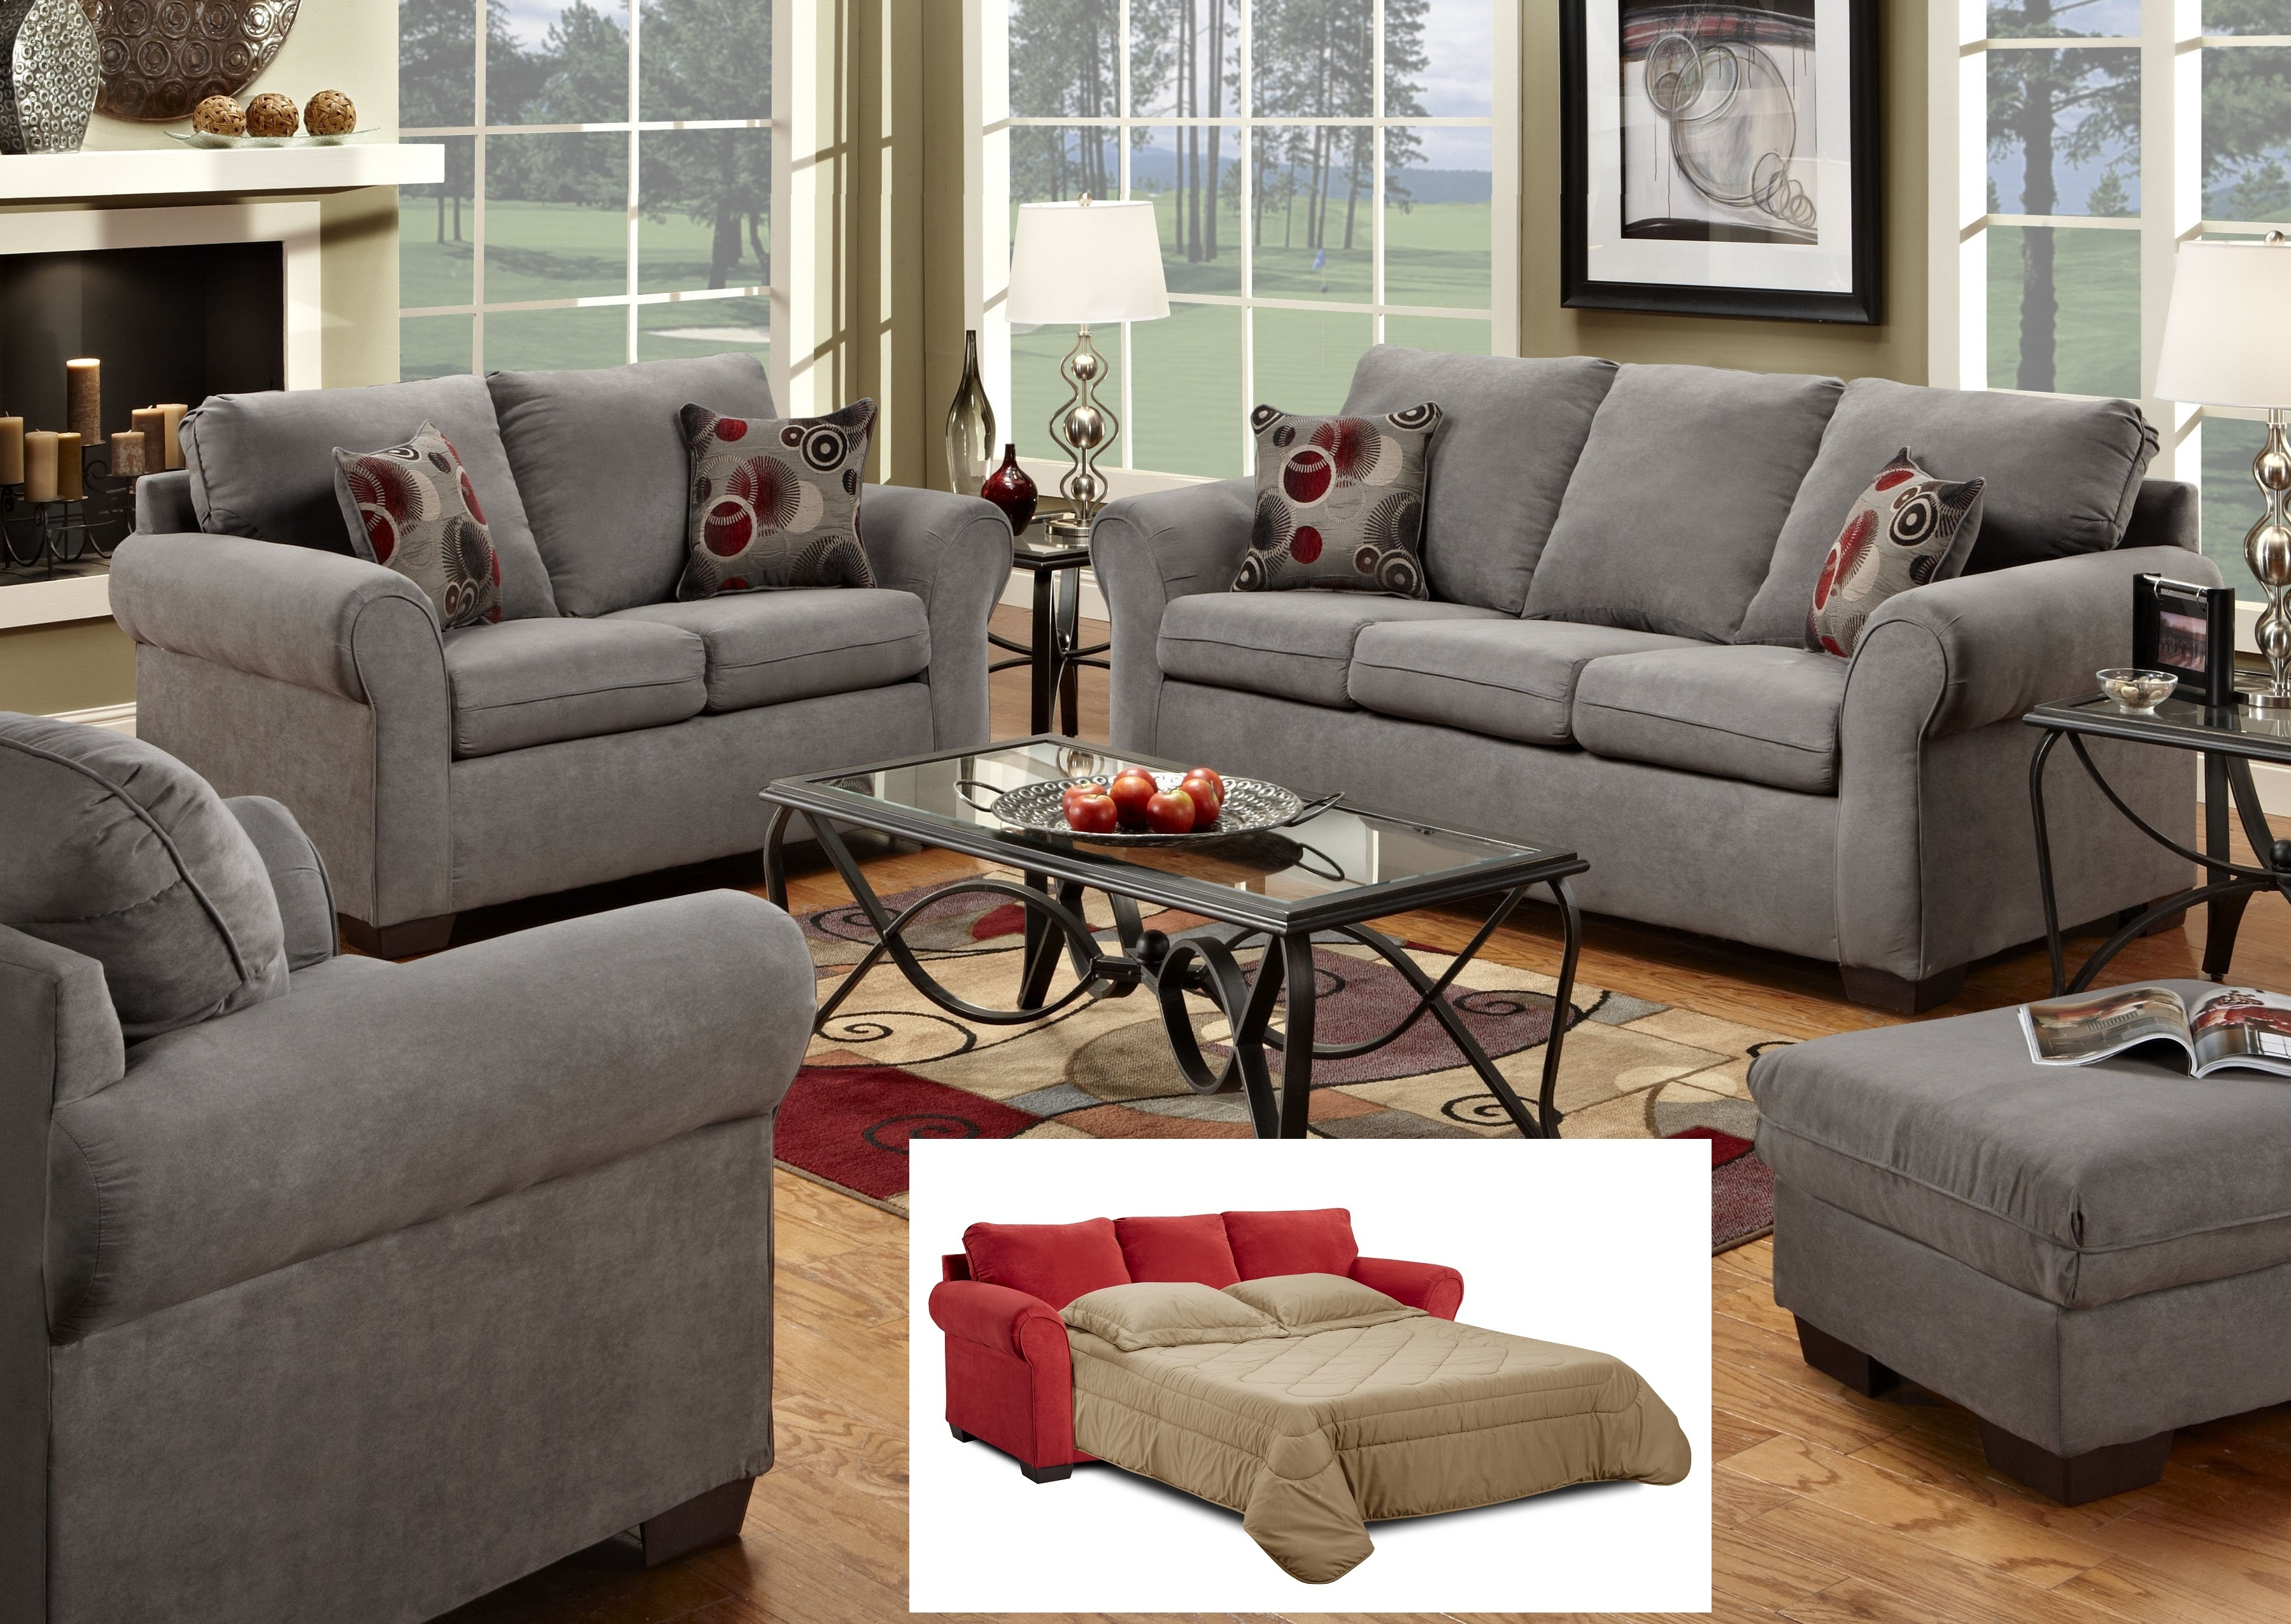 Tables Sets Plaid Slipcovers Table Room Sofa Sofas Chic Barclay pertaining to 13 Smart Ideas How to Make Country Style Living Room Sets